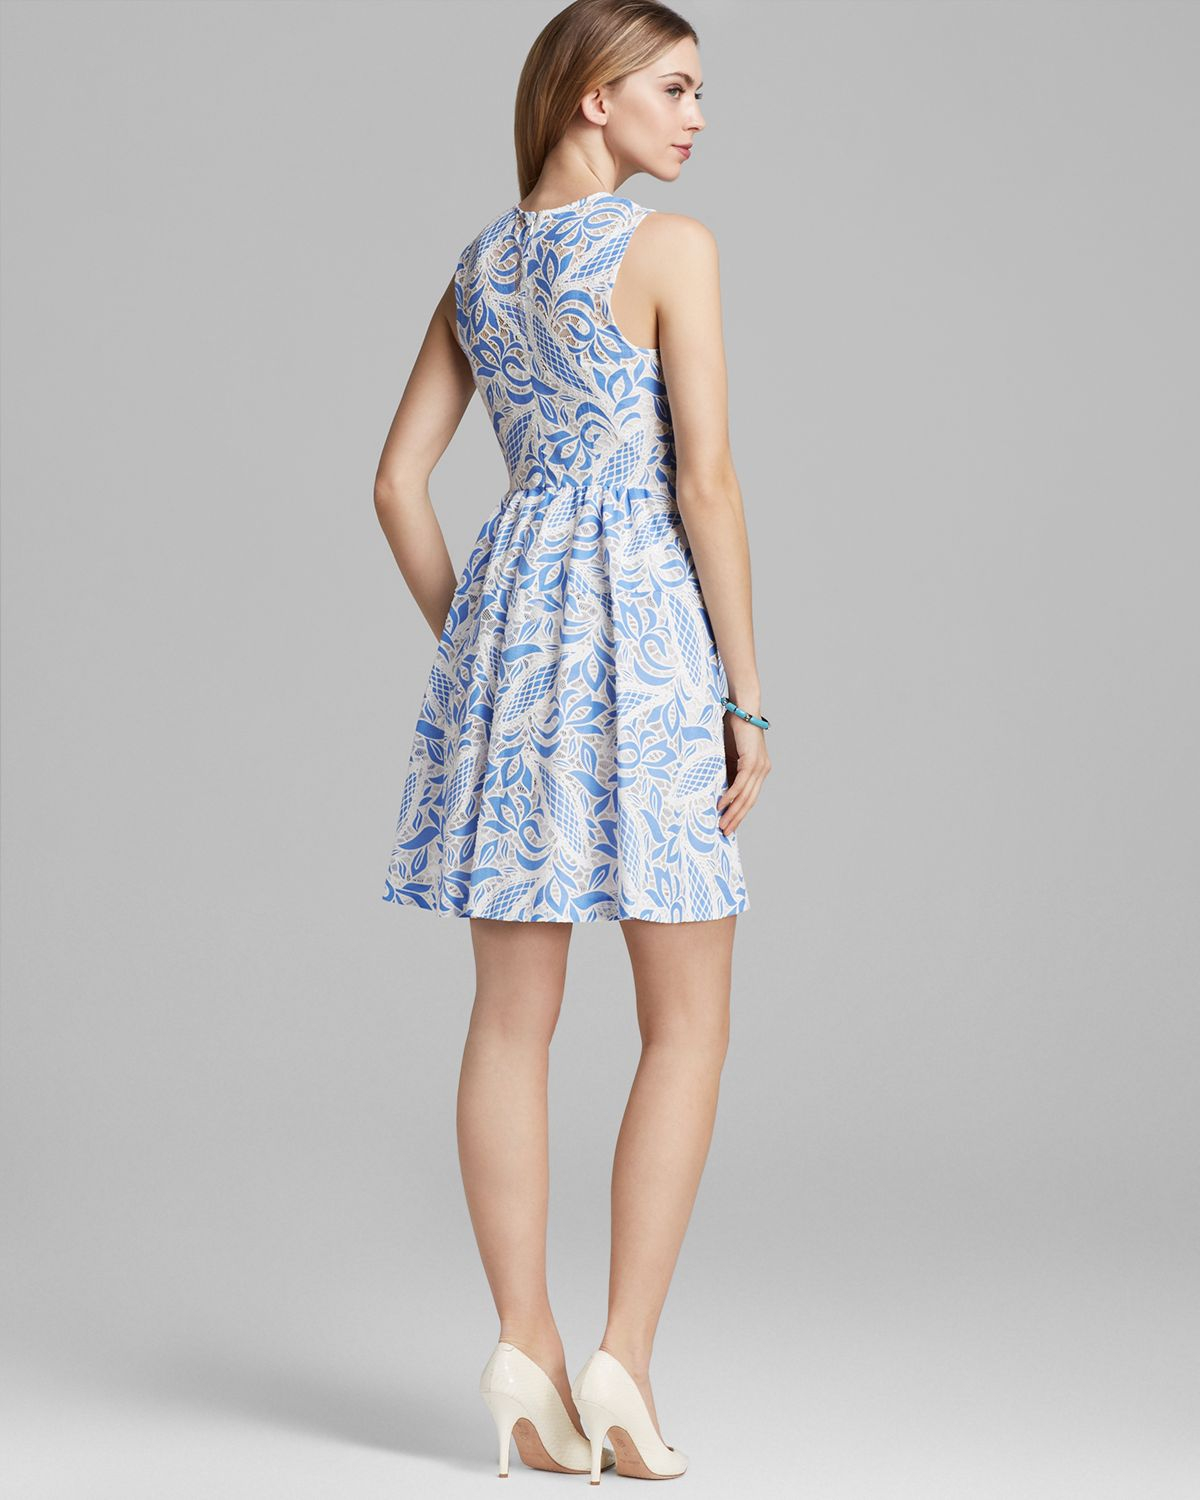 Tracy Reese Dress Alana Paisley Lace Fit And Flare In